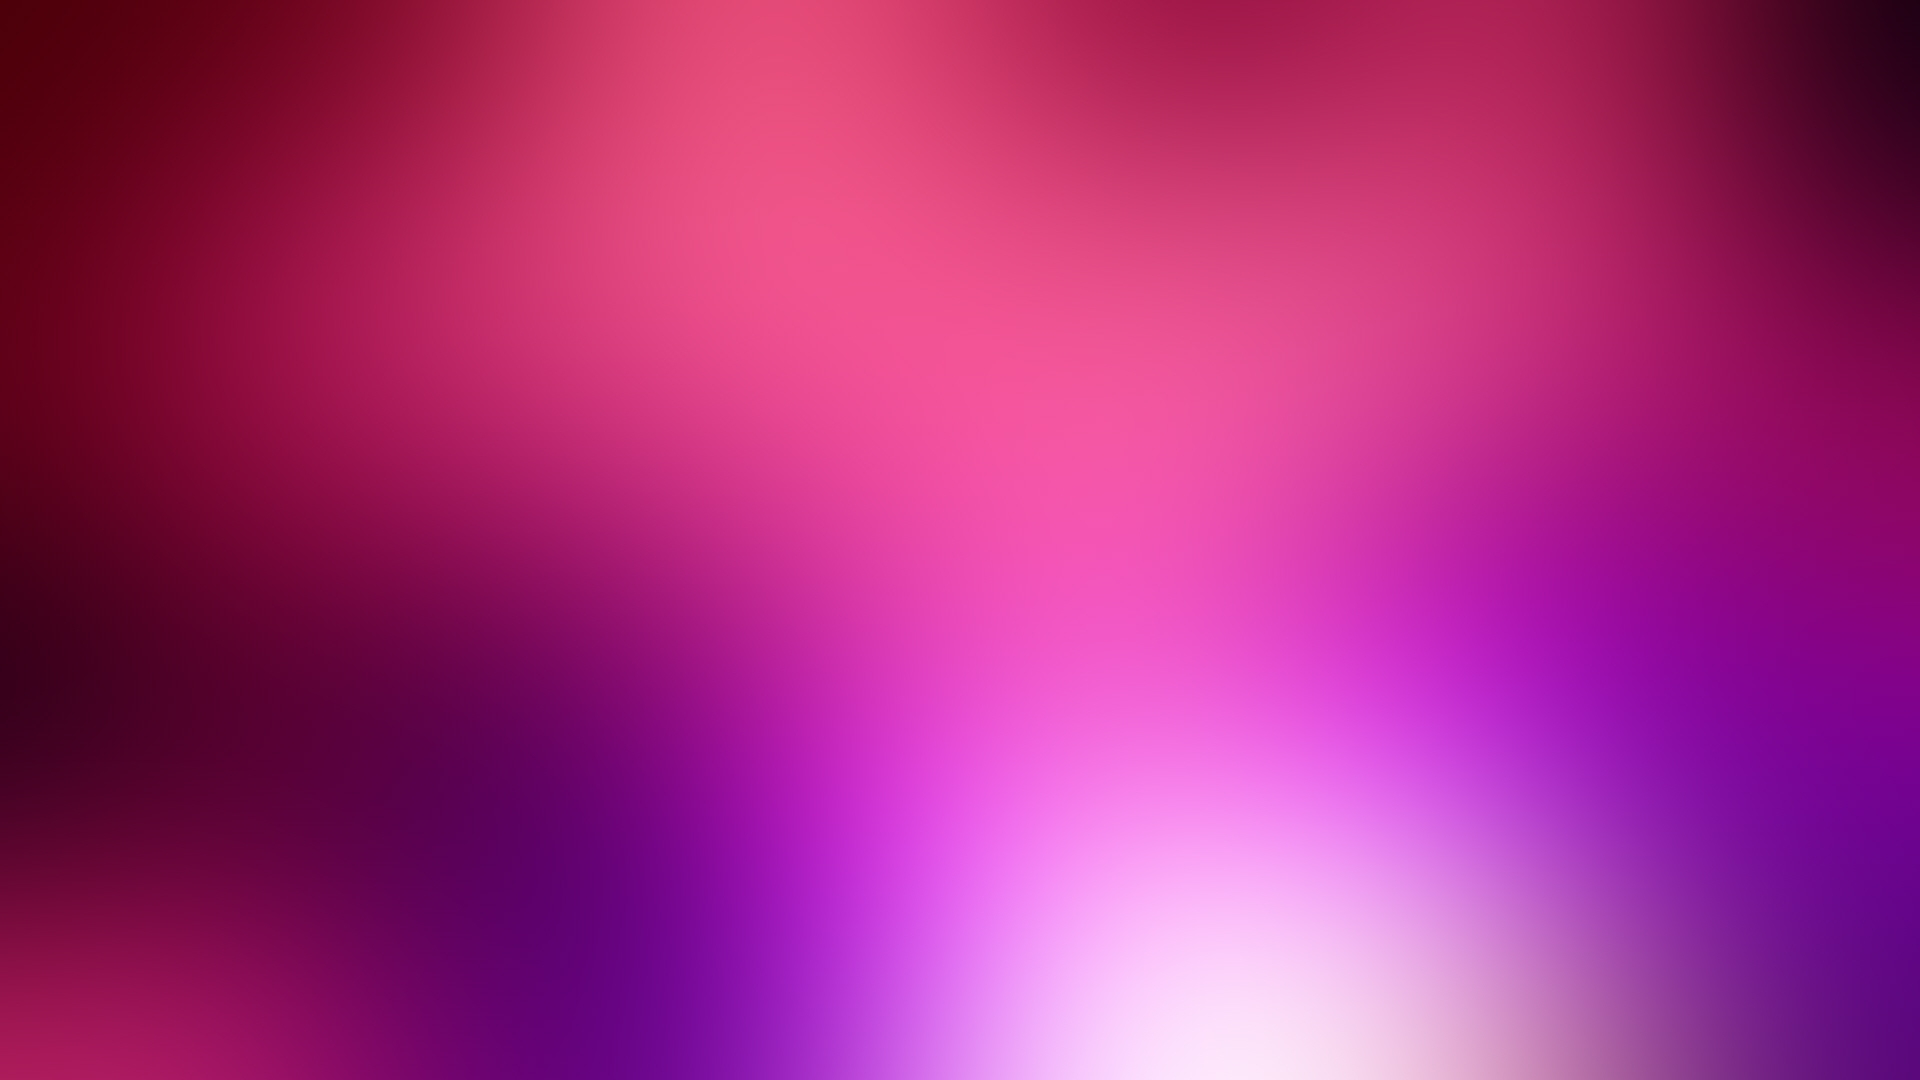 Download wallpaper 1920x1080 pink purple light abstraction full pink purple light junglespirit Choice Image